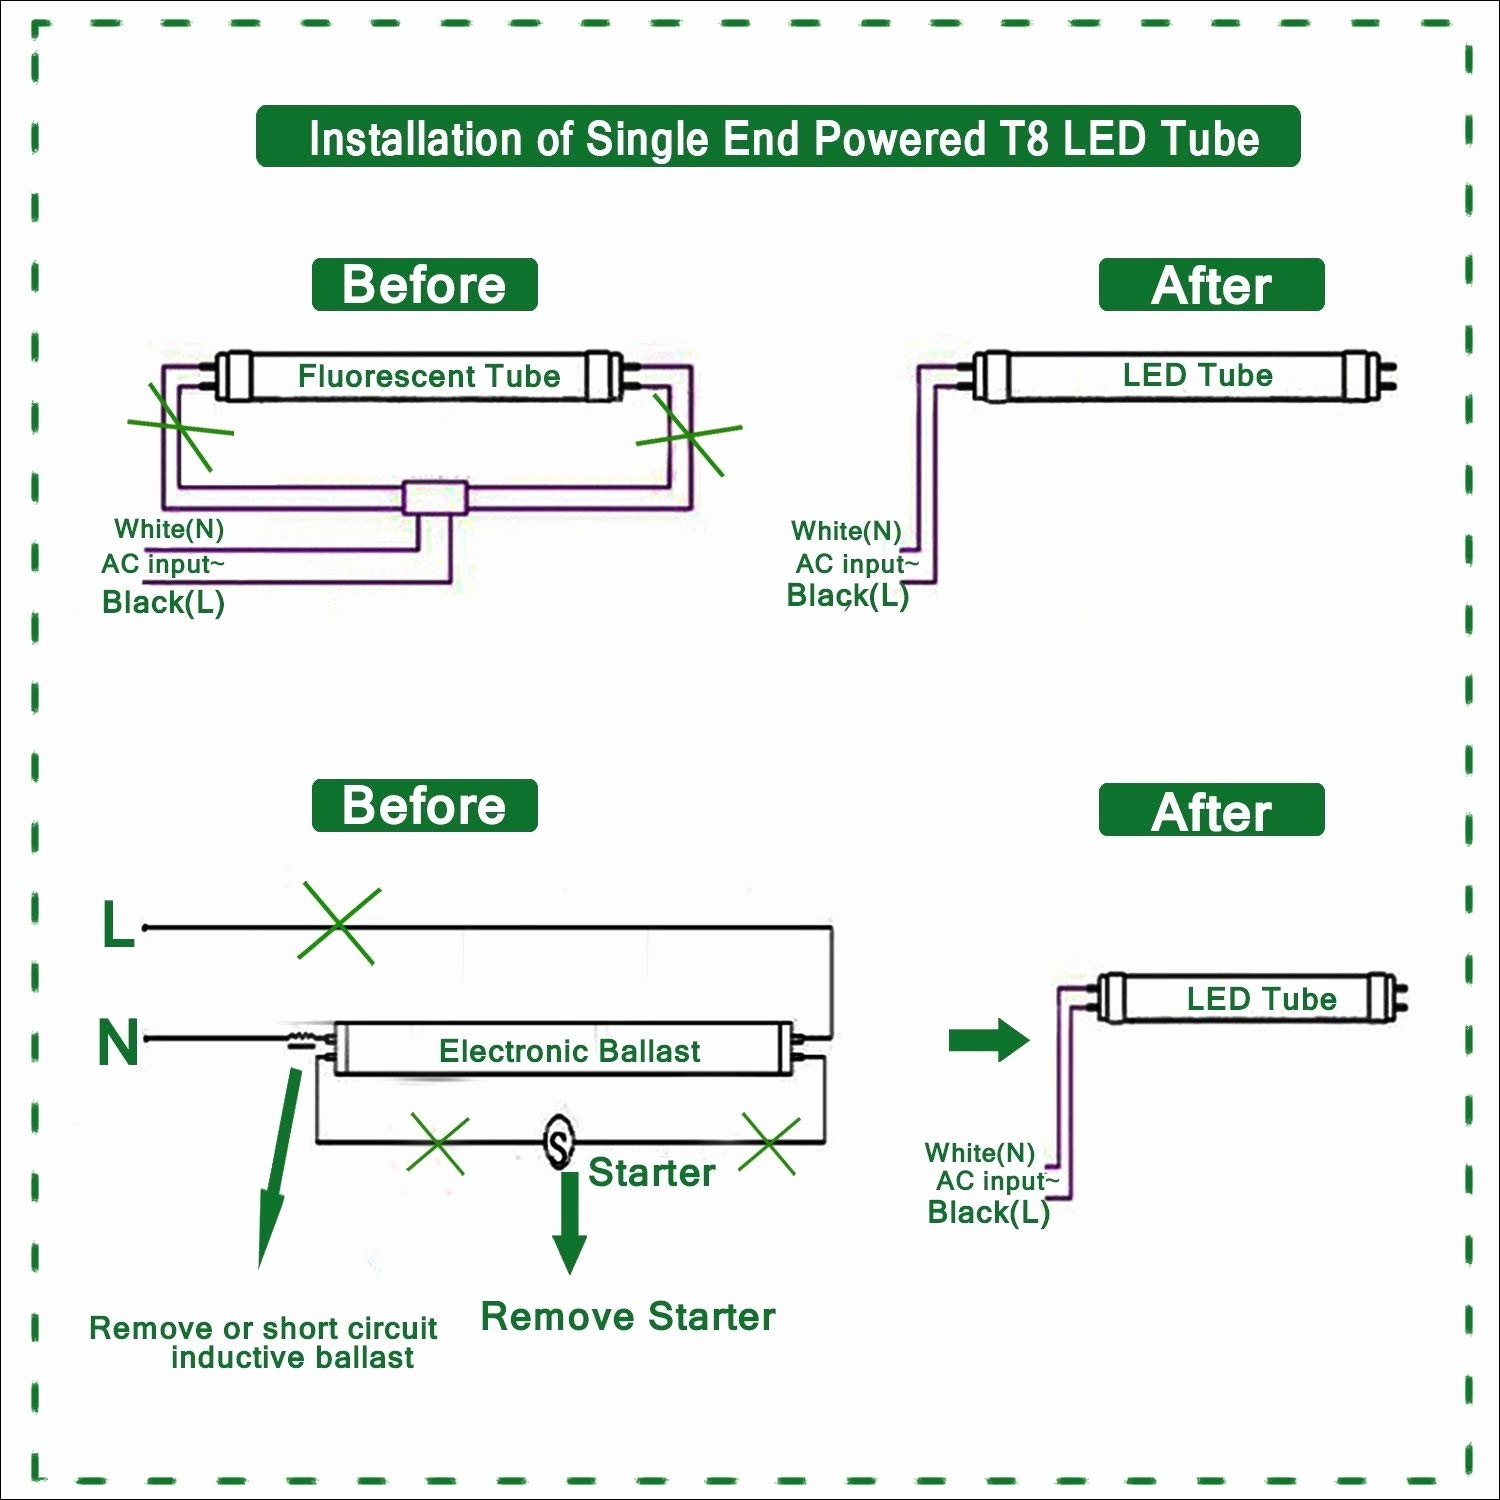 Led Wiring Diagram 120V Fluorescent Tubes | Wiring Diagram - Fluorescent Light Wiring Diagram